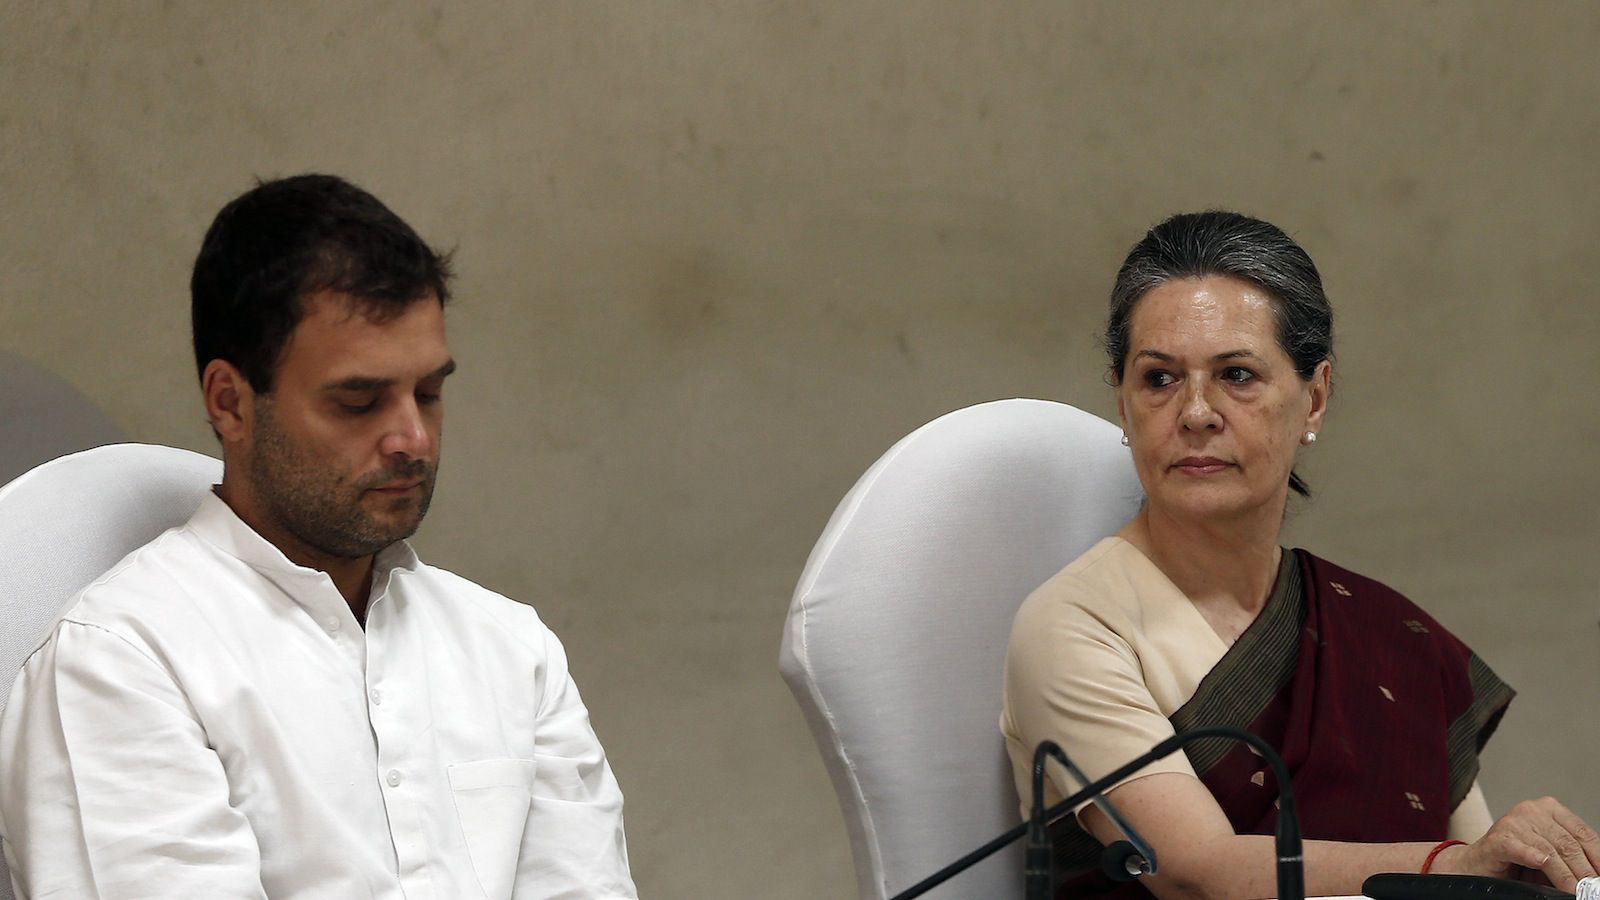 Congress party chief Sonia Gandhi (R) and her son and vice-president of Congress Rahul Gandhi attend the Congress Working Committee (CWC) meeting in New Delhi May 19, 2014. India's Congress party was preparing to rally around the Nehru-Gandhi dynasty on Monday to snuff out possible dissent after it suffered its most humiliating defeat in an election. Both party chief Sonia Gandhi and her son and heir apparent, Rahul, have accepted responsibility for the loss. Ahead of a top-level meeting, party sources said there was no question of either resigning their posts. REUTERS/Adnan Abidi (INDIA - Tags: POLITICS ELECTIONS) - RTR3PTOP